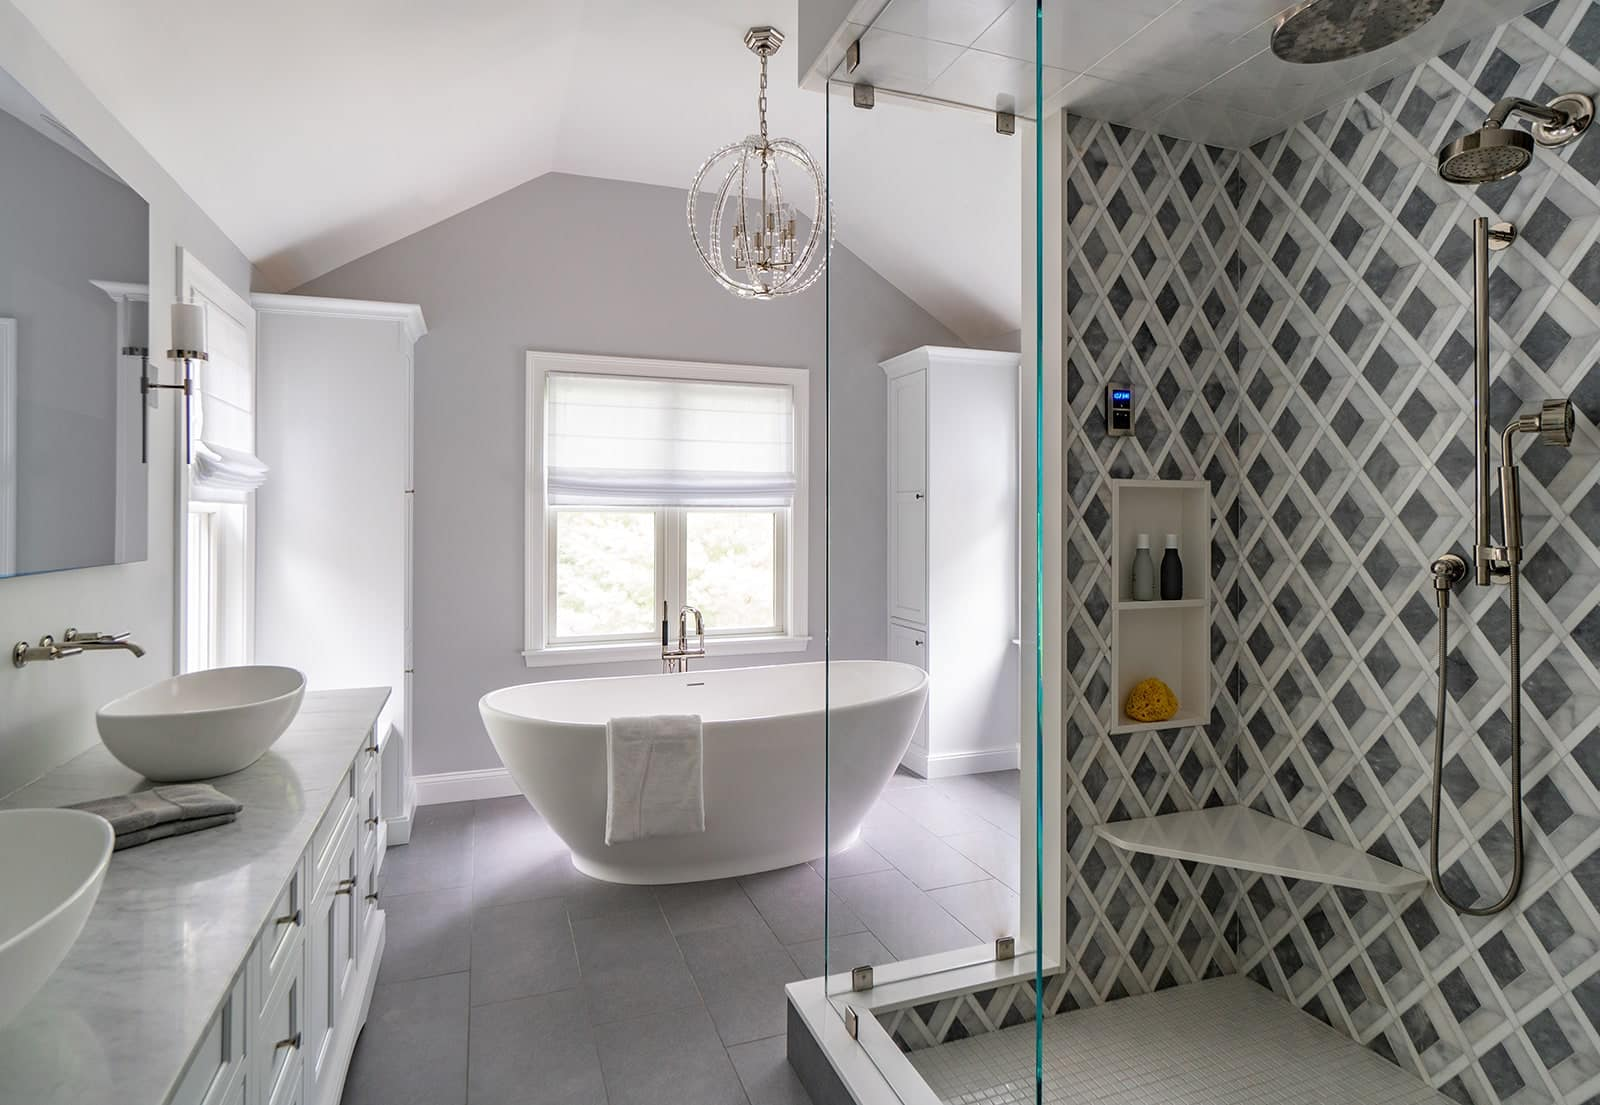 North Shore Tranquility Interiors Middleton MA aa Bathroom